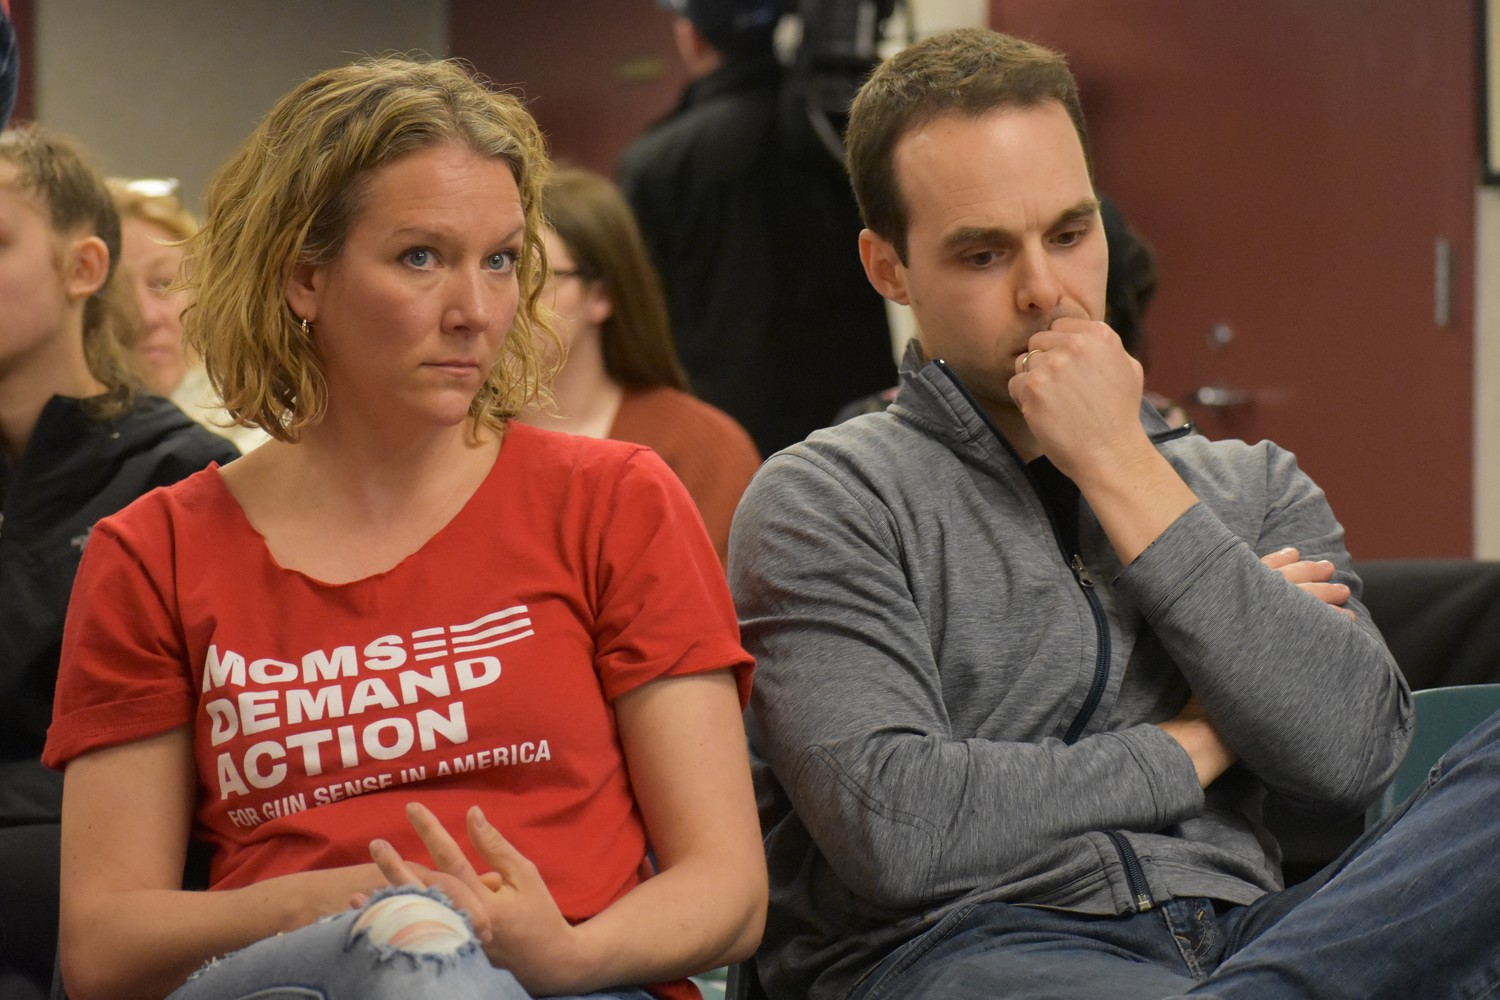 Tracy Bacher, a leader of Moms Demand Action in Nassau County, and Robert Gaafar, a Rockville Centre resident who escaped the mass shooting in Las Vegas last October, spoke at a forum about gun violence at the Rockville Centre Public Library on Saturday.